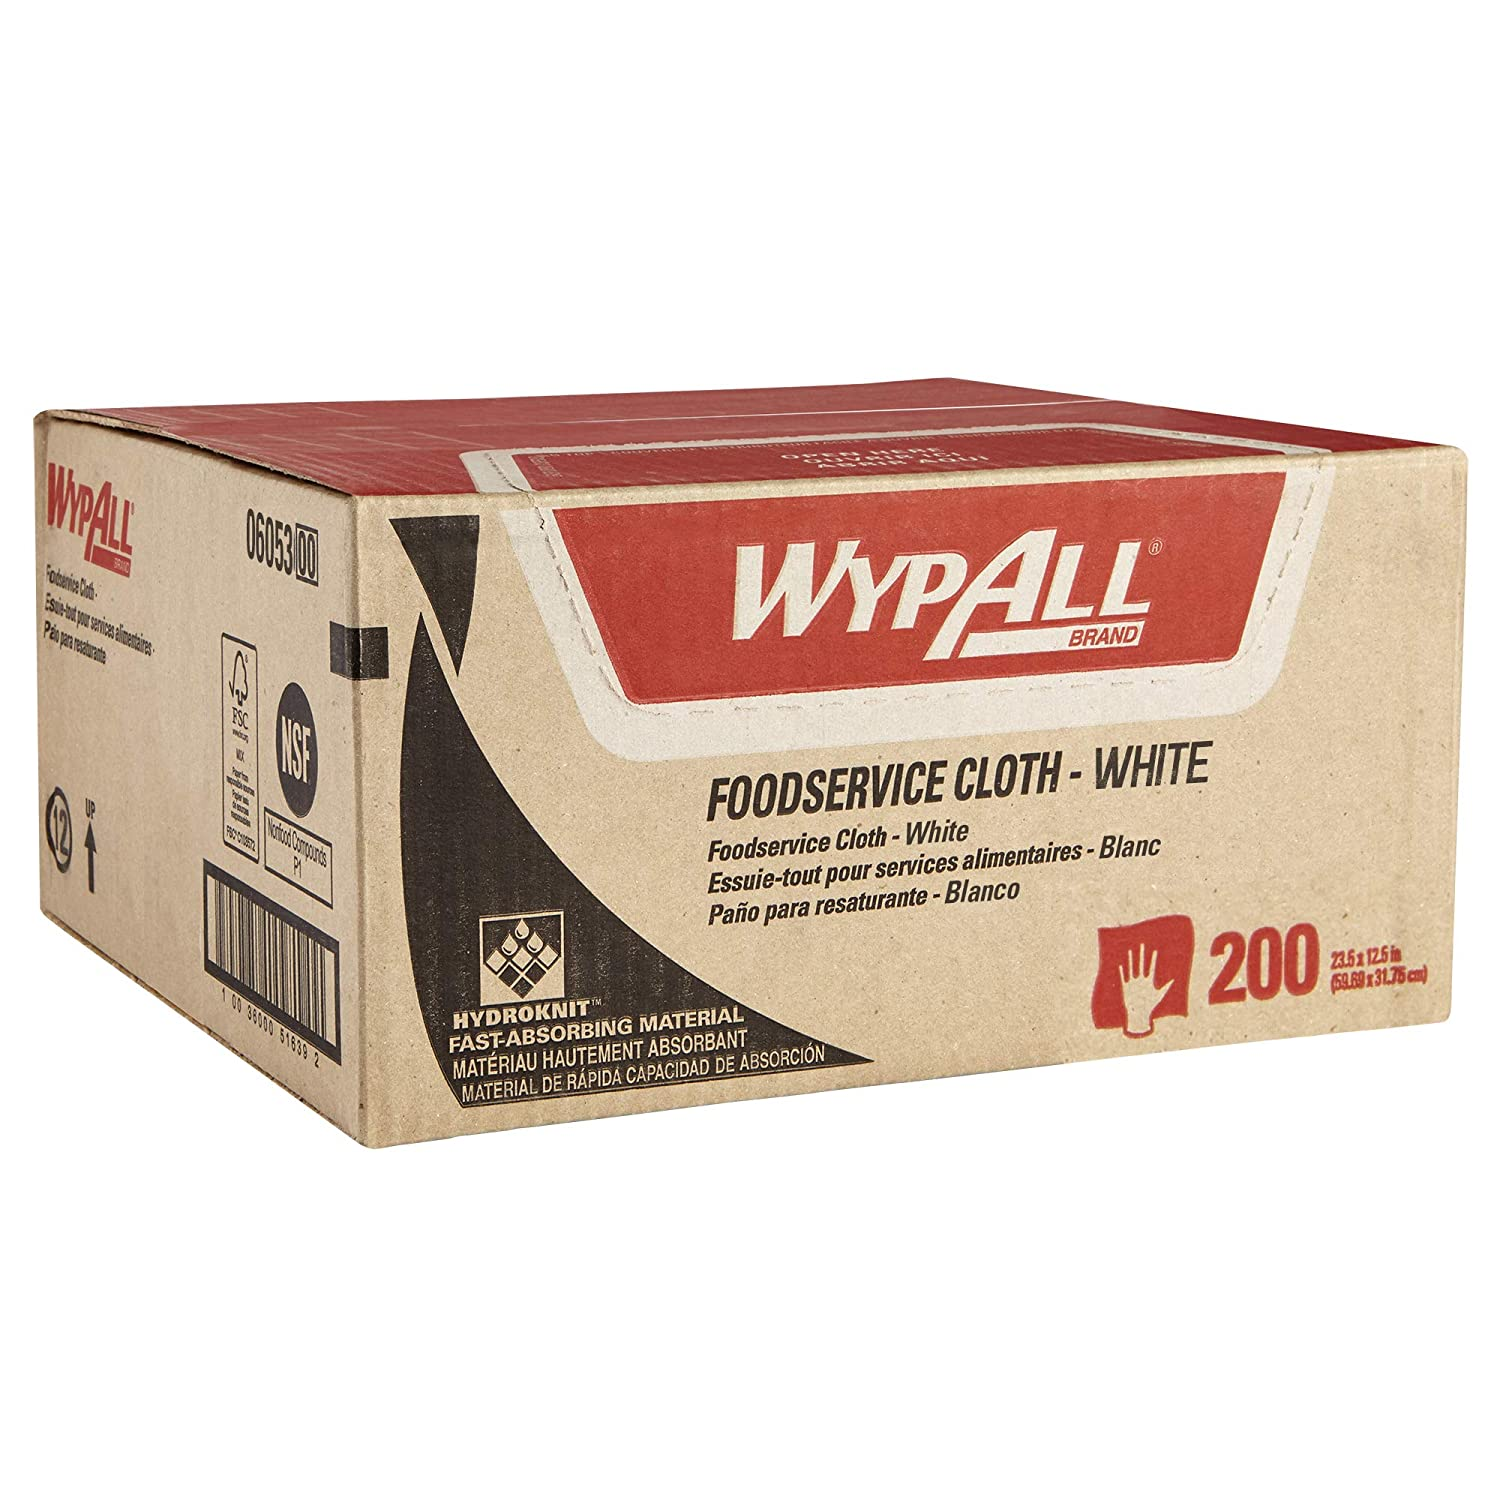 WypAll X50 Extended Use Foodservice Towels Reusable Wipers (06053), Quarterfold, White, 1 Box, 200 Sheets